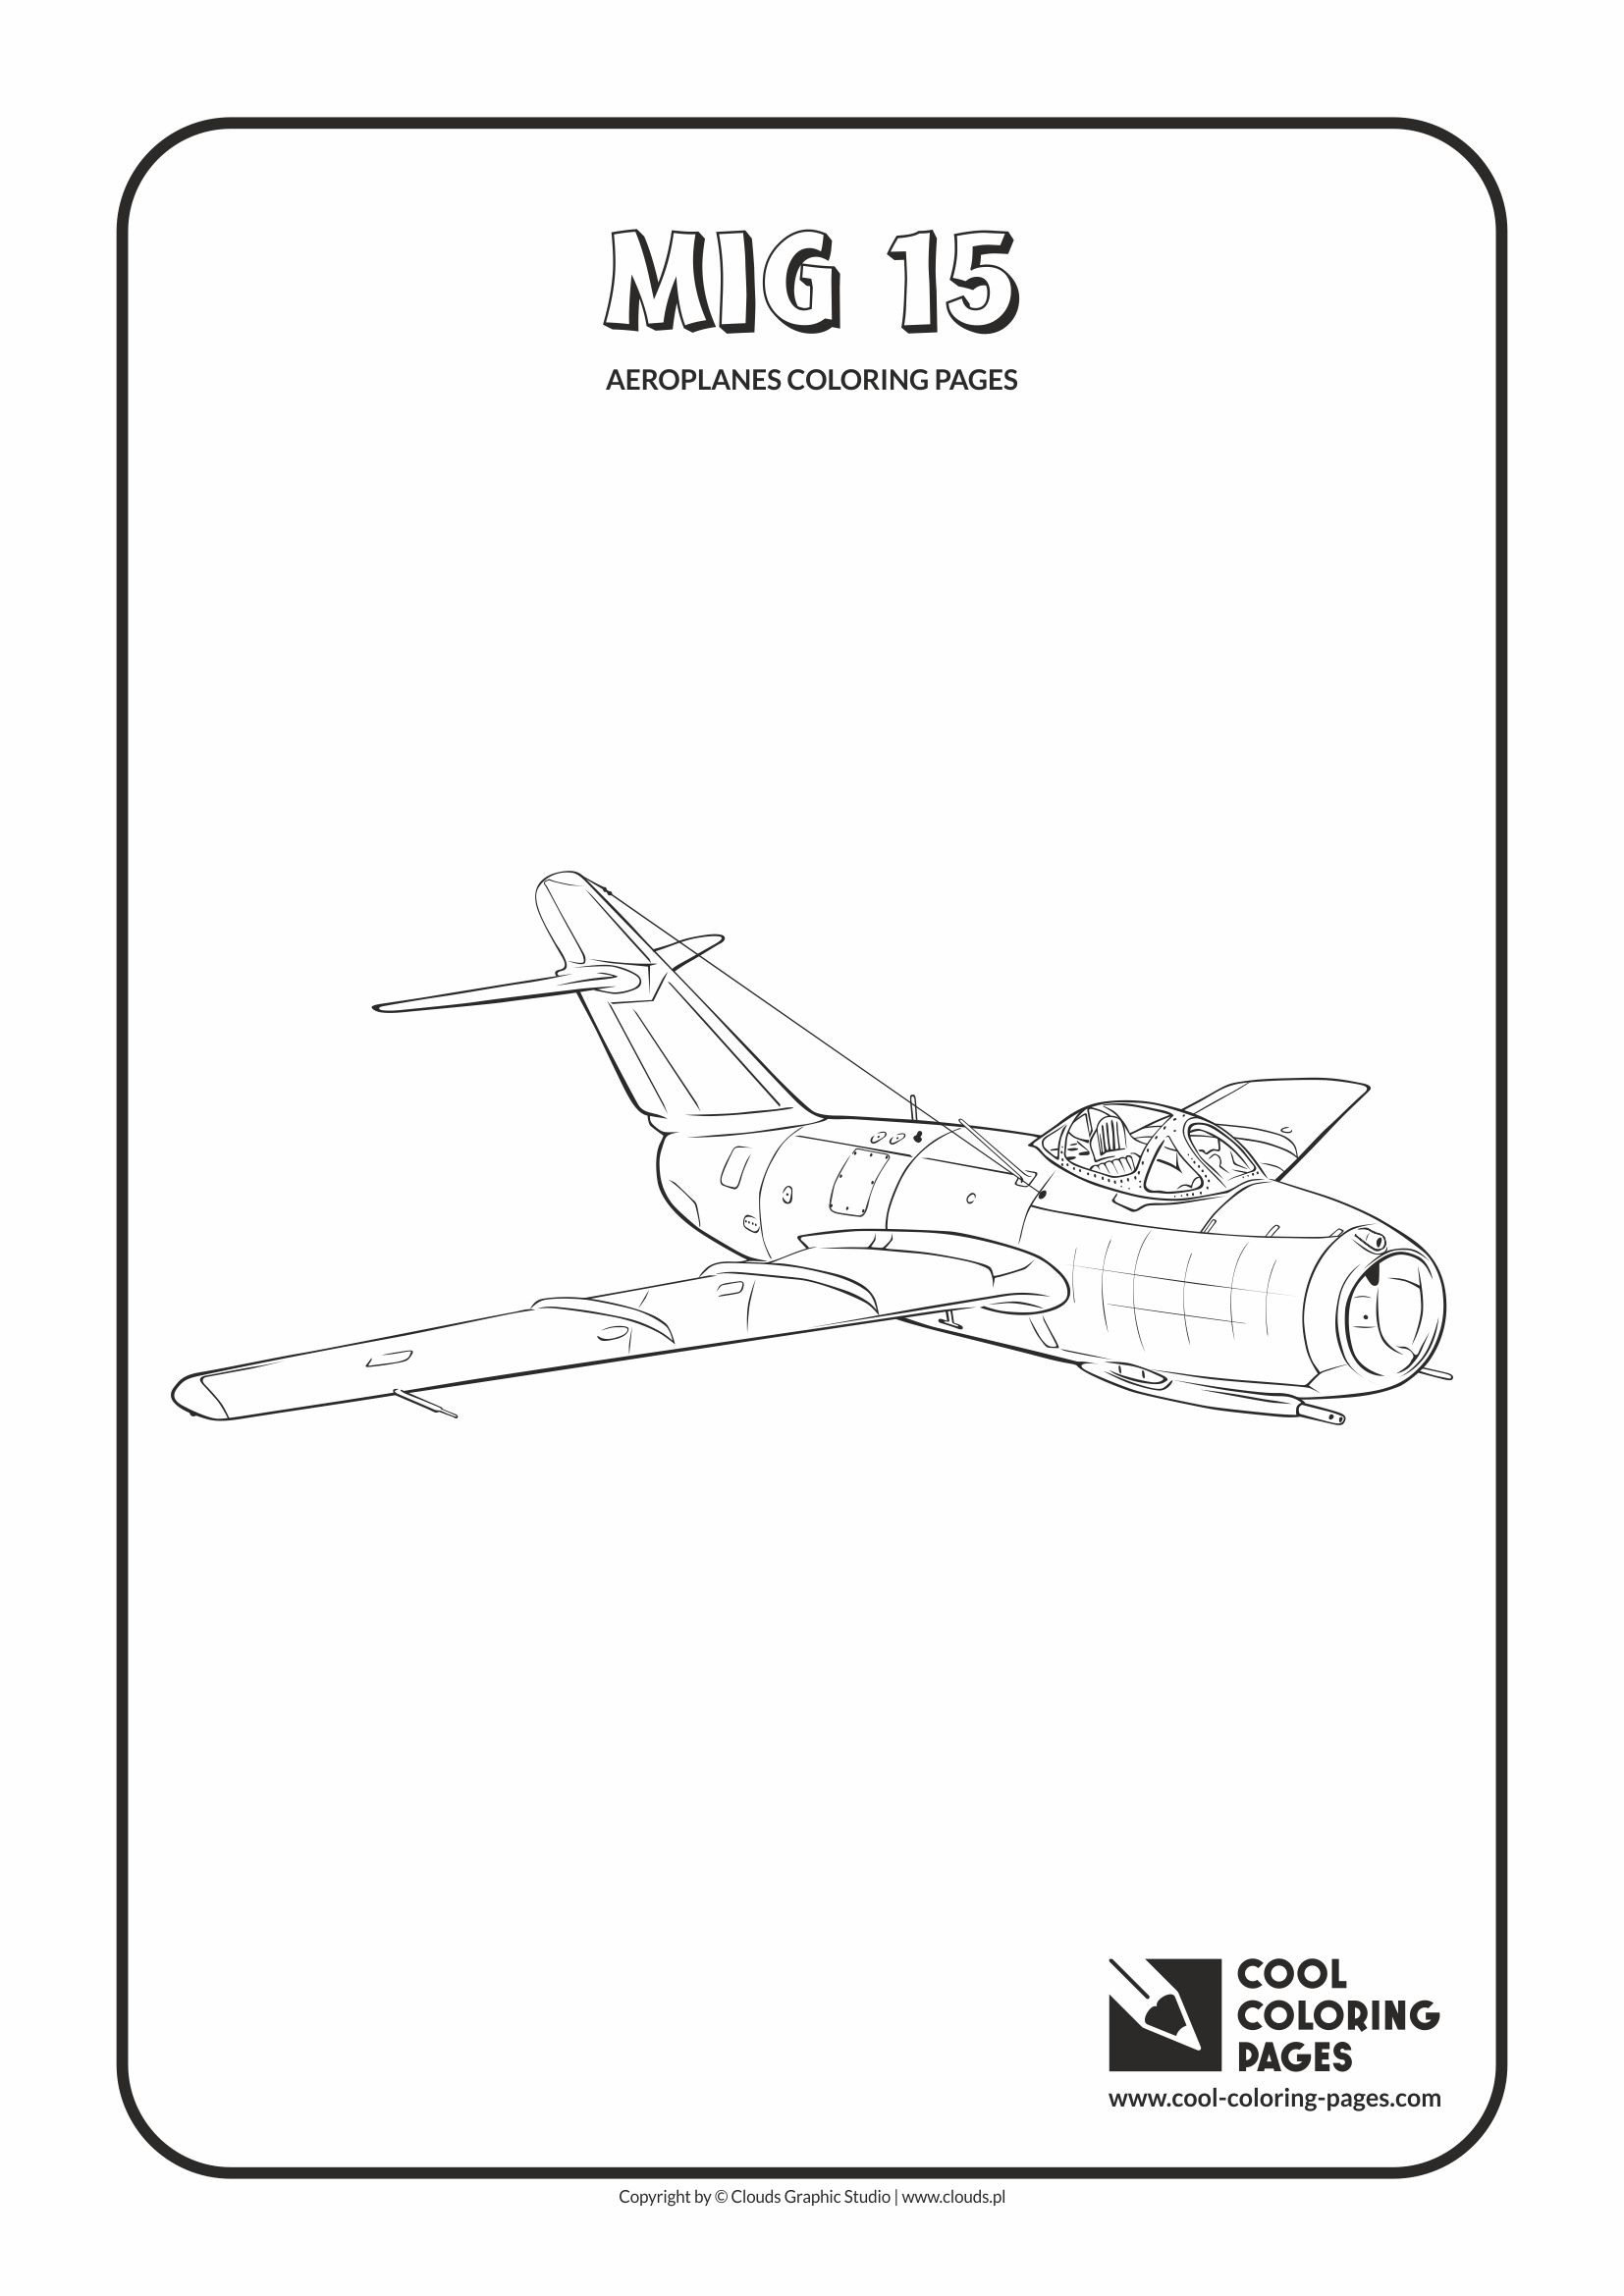 Cool Coloring Pages - Vehicles / Mig 15 / Coloring page with Mig 15